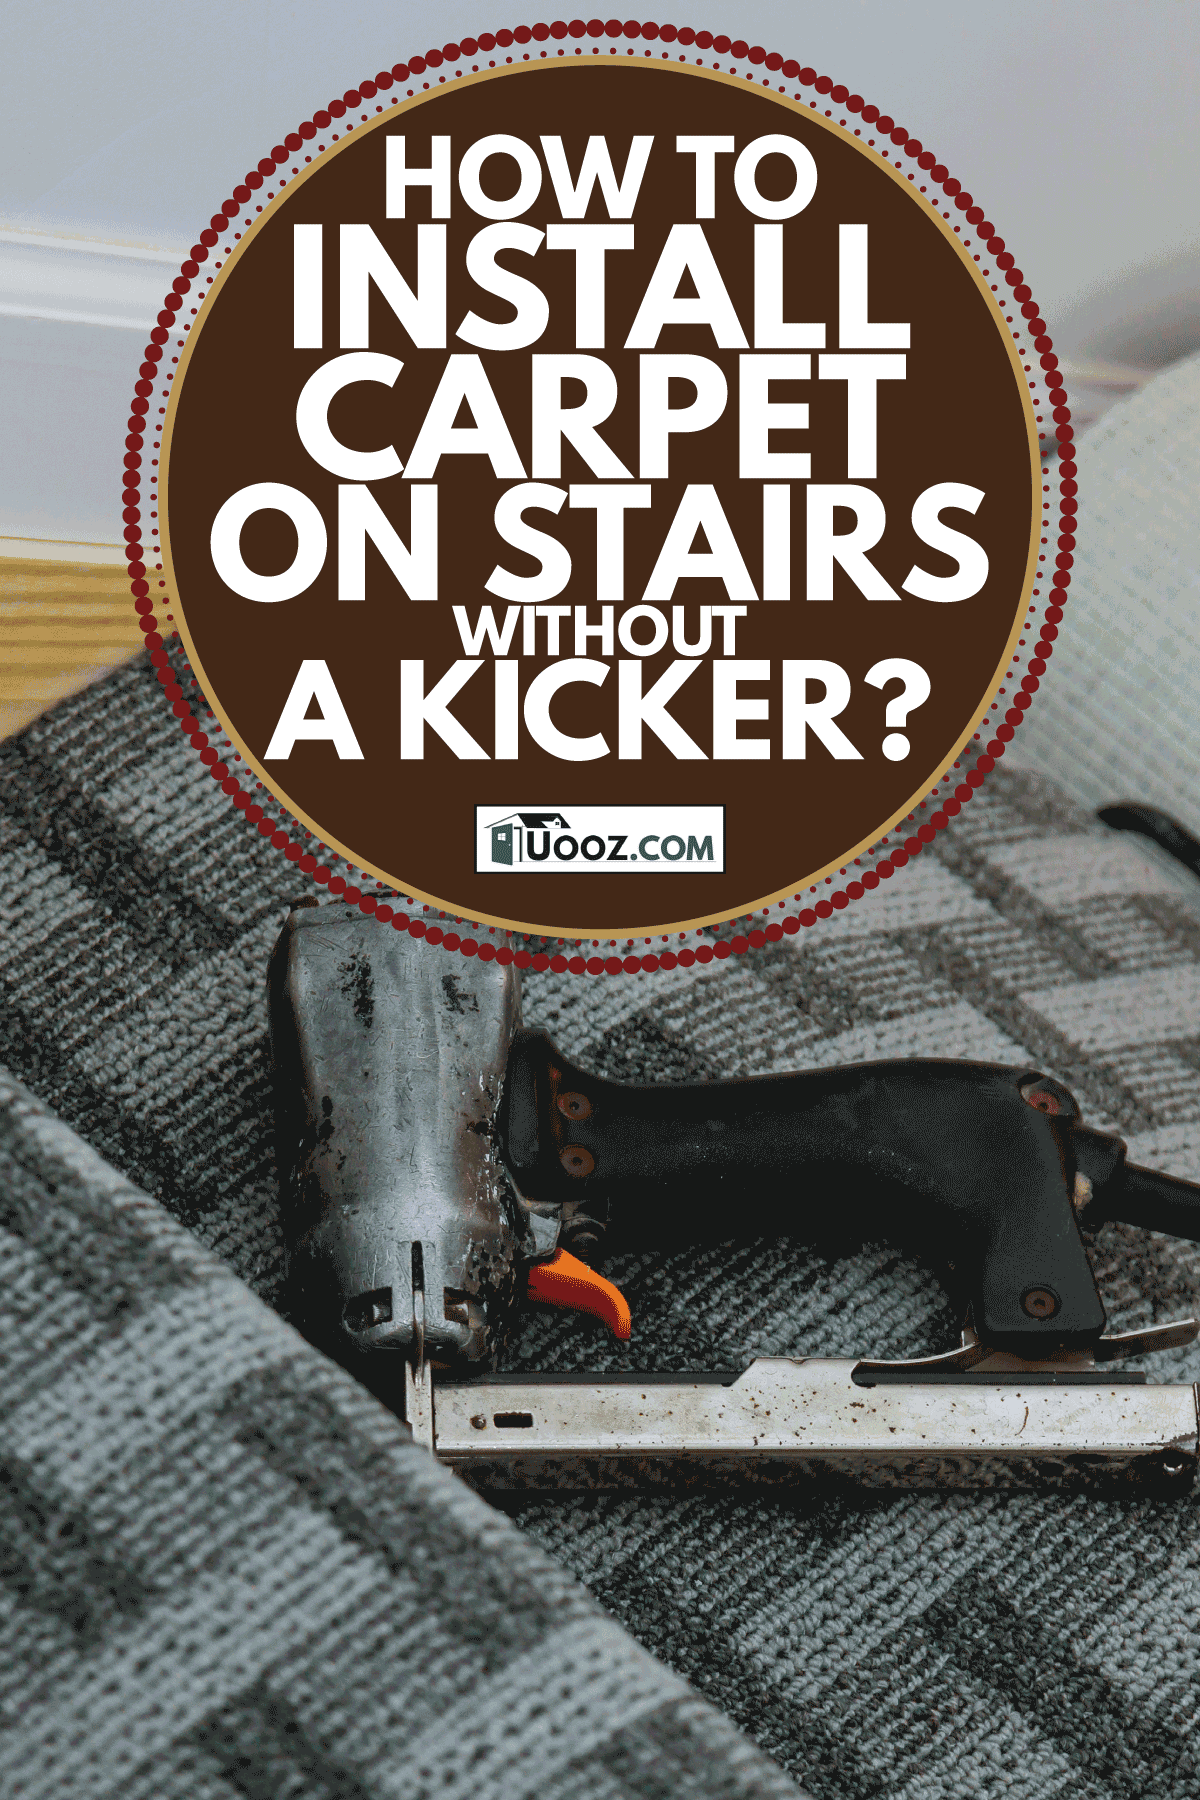 installing carpet on staircase using gas operated tack. How To Install Carpet On Stairs Without A Kicker